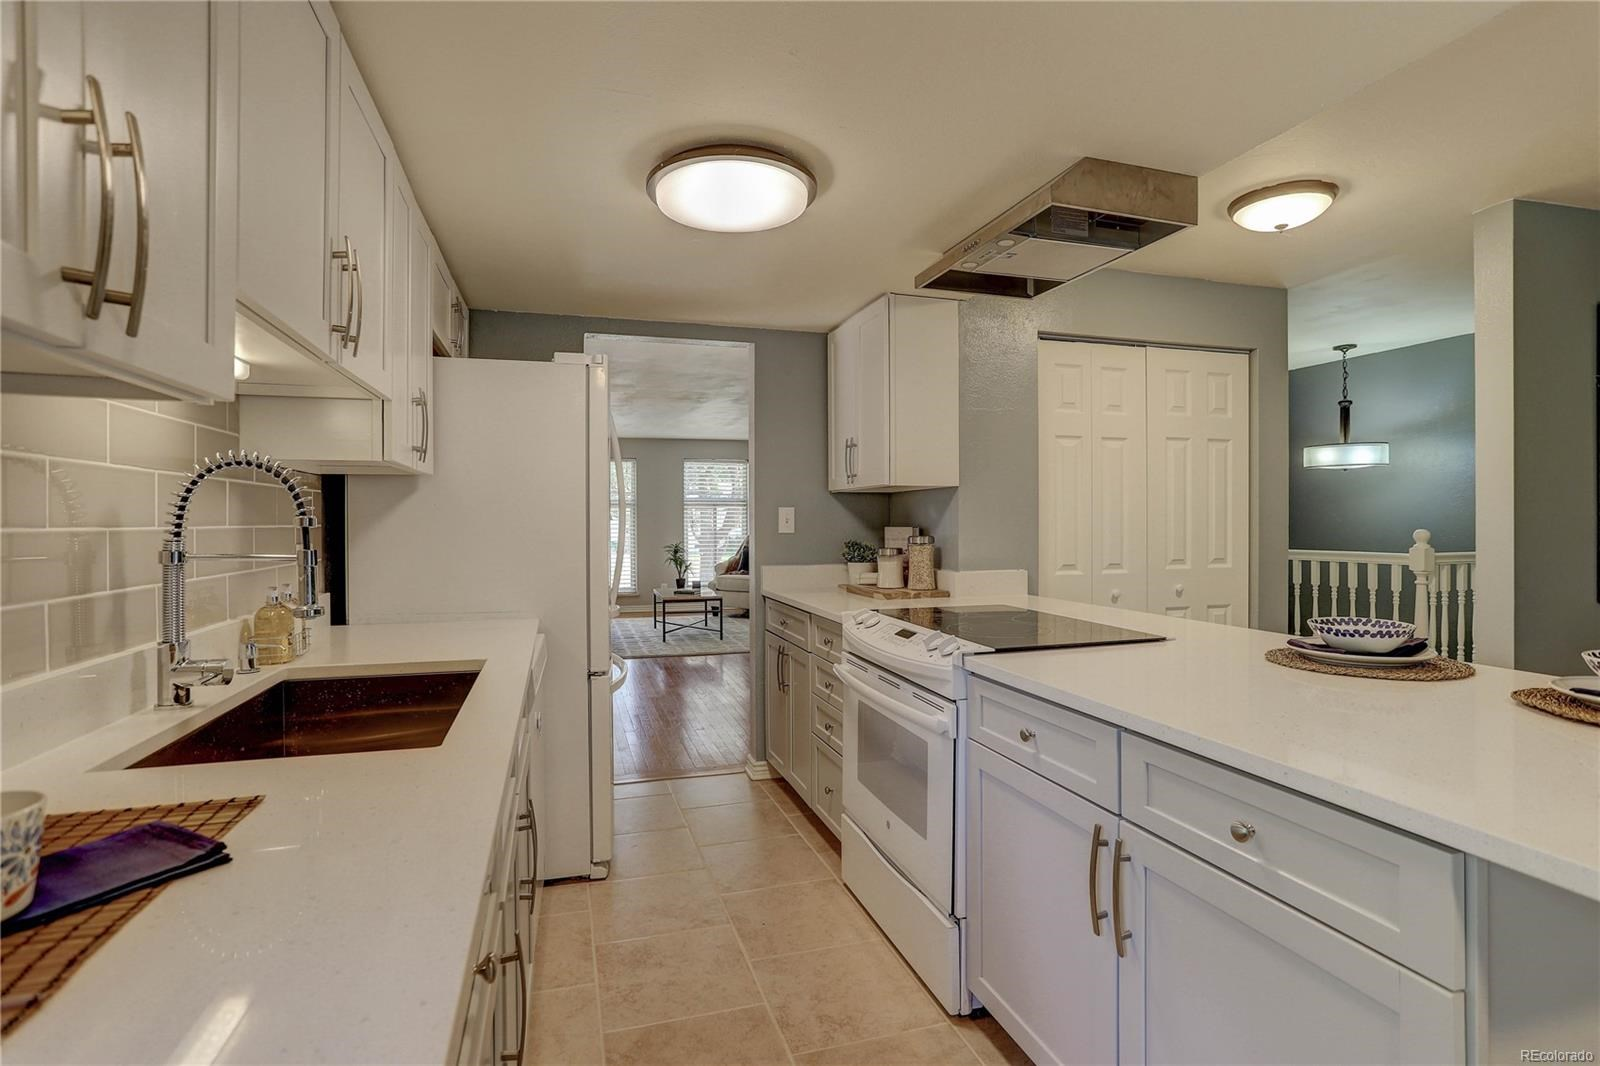 MLS# 2968148 - 8 - 2931 S Downing Street, Englewood, CO 80113